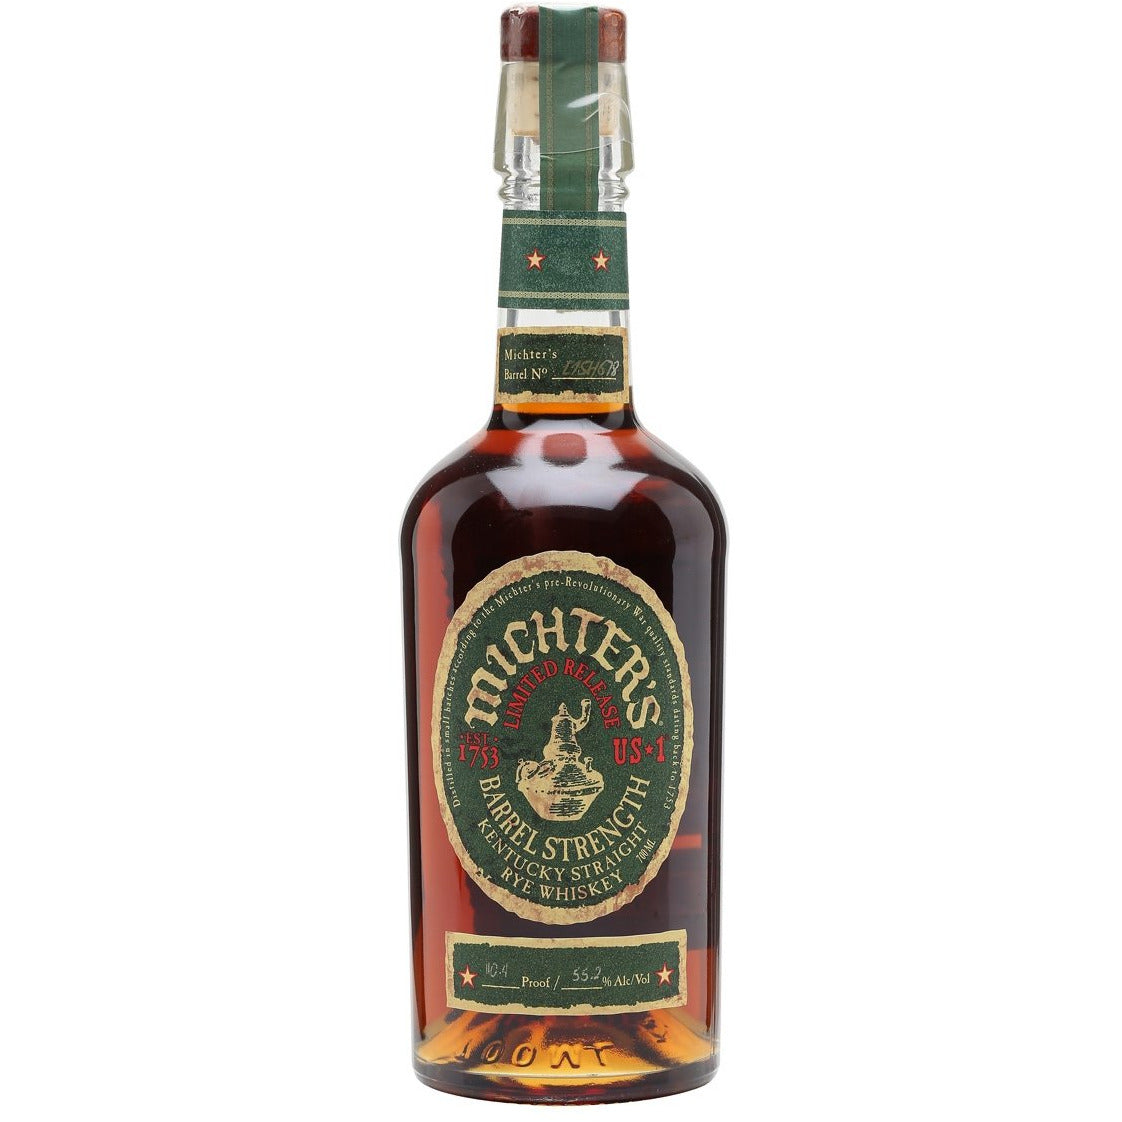 Michters Limited Release Us*1 Barrel Strength Rye (750 ML)